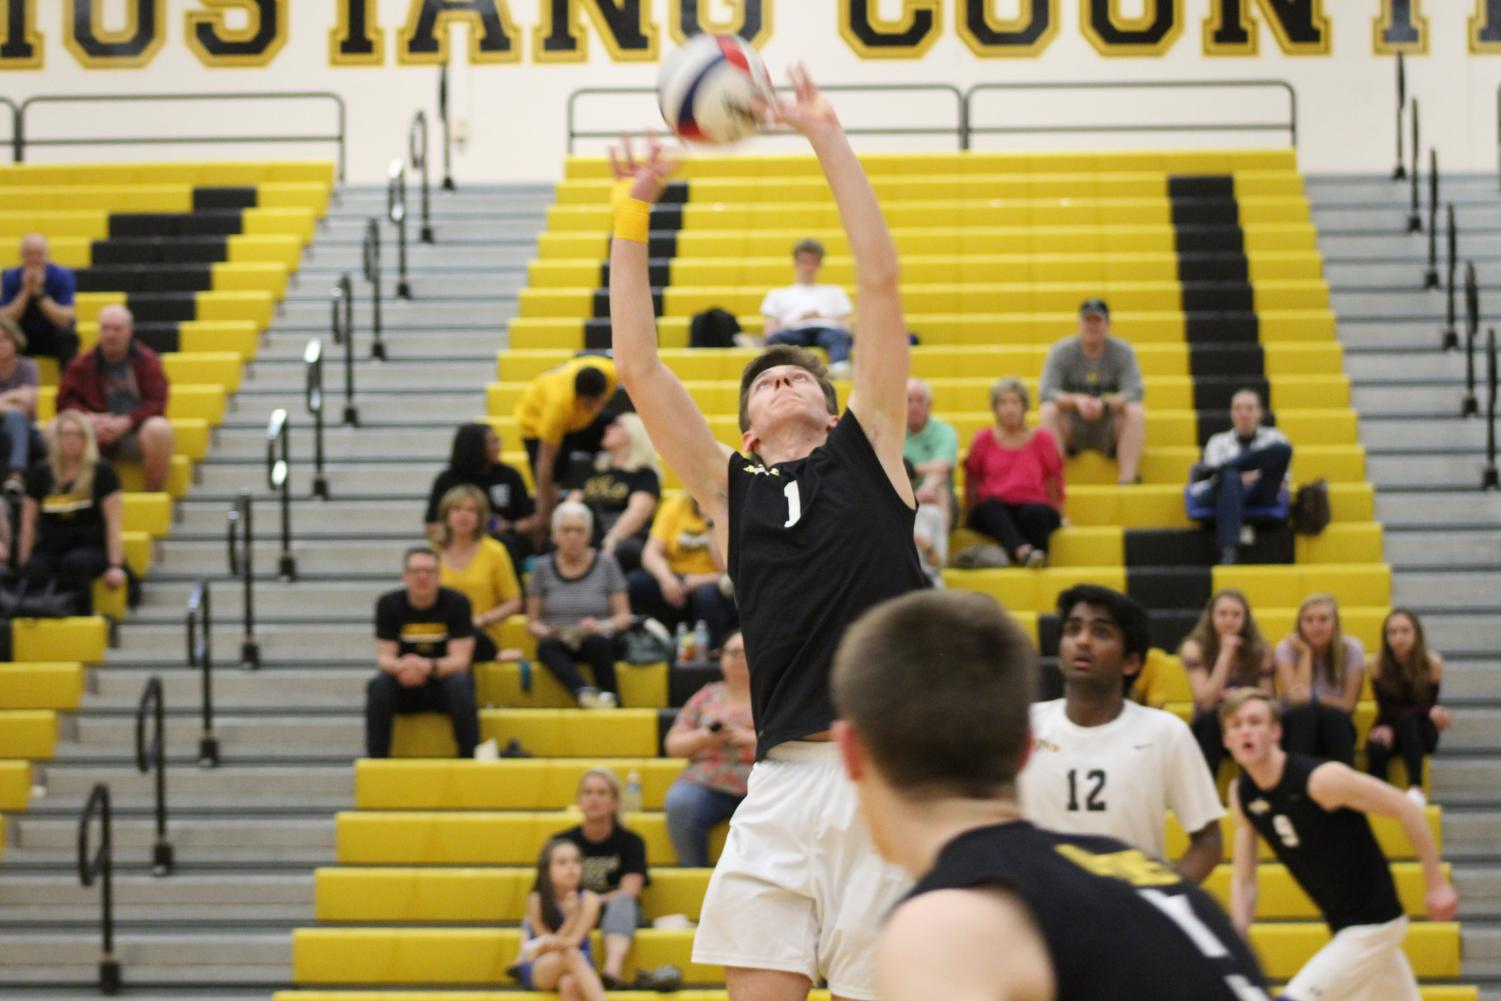 Junior setter Brandon Long setting the ball to teammate and outside hitter Ryan Owens during the conference opener game against Naperville Central on April 15.